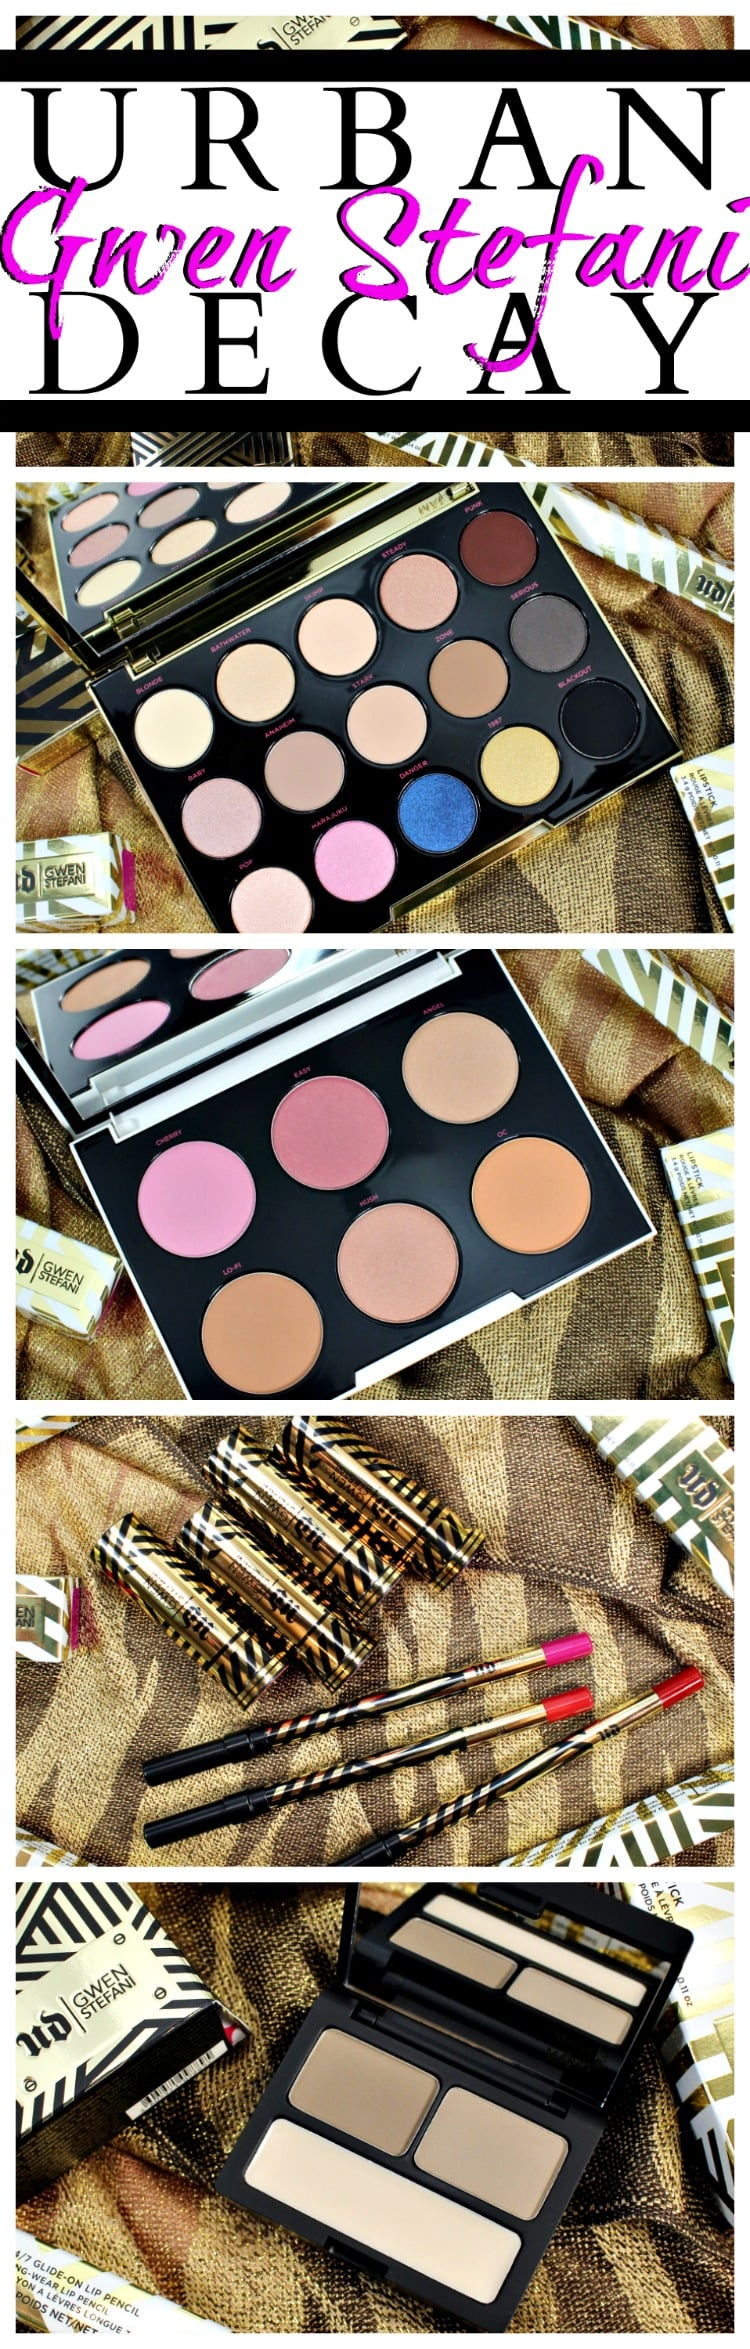 Urban Decay Gwen Stefani Collection swatches review photos 2016